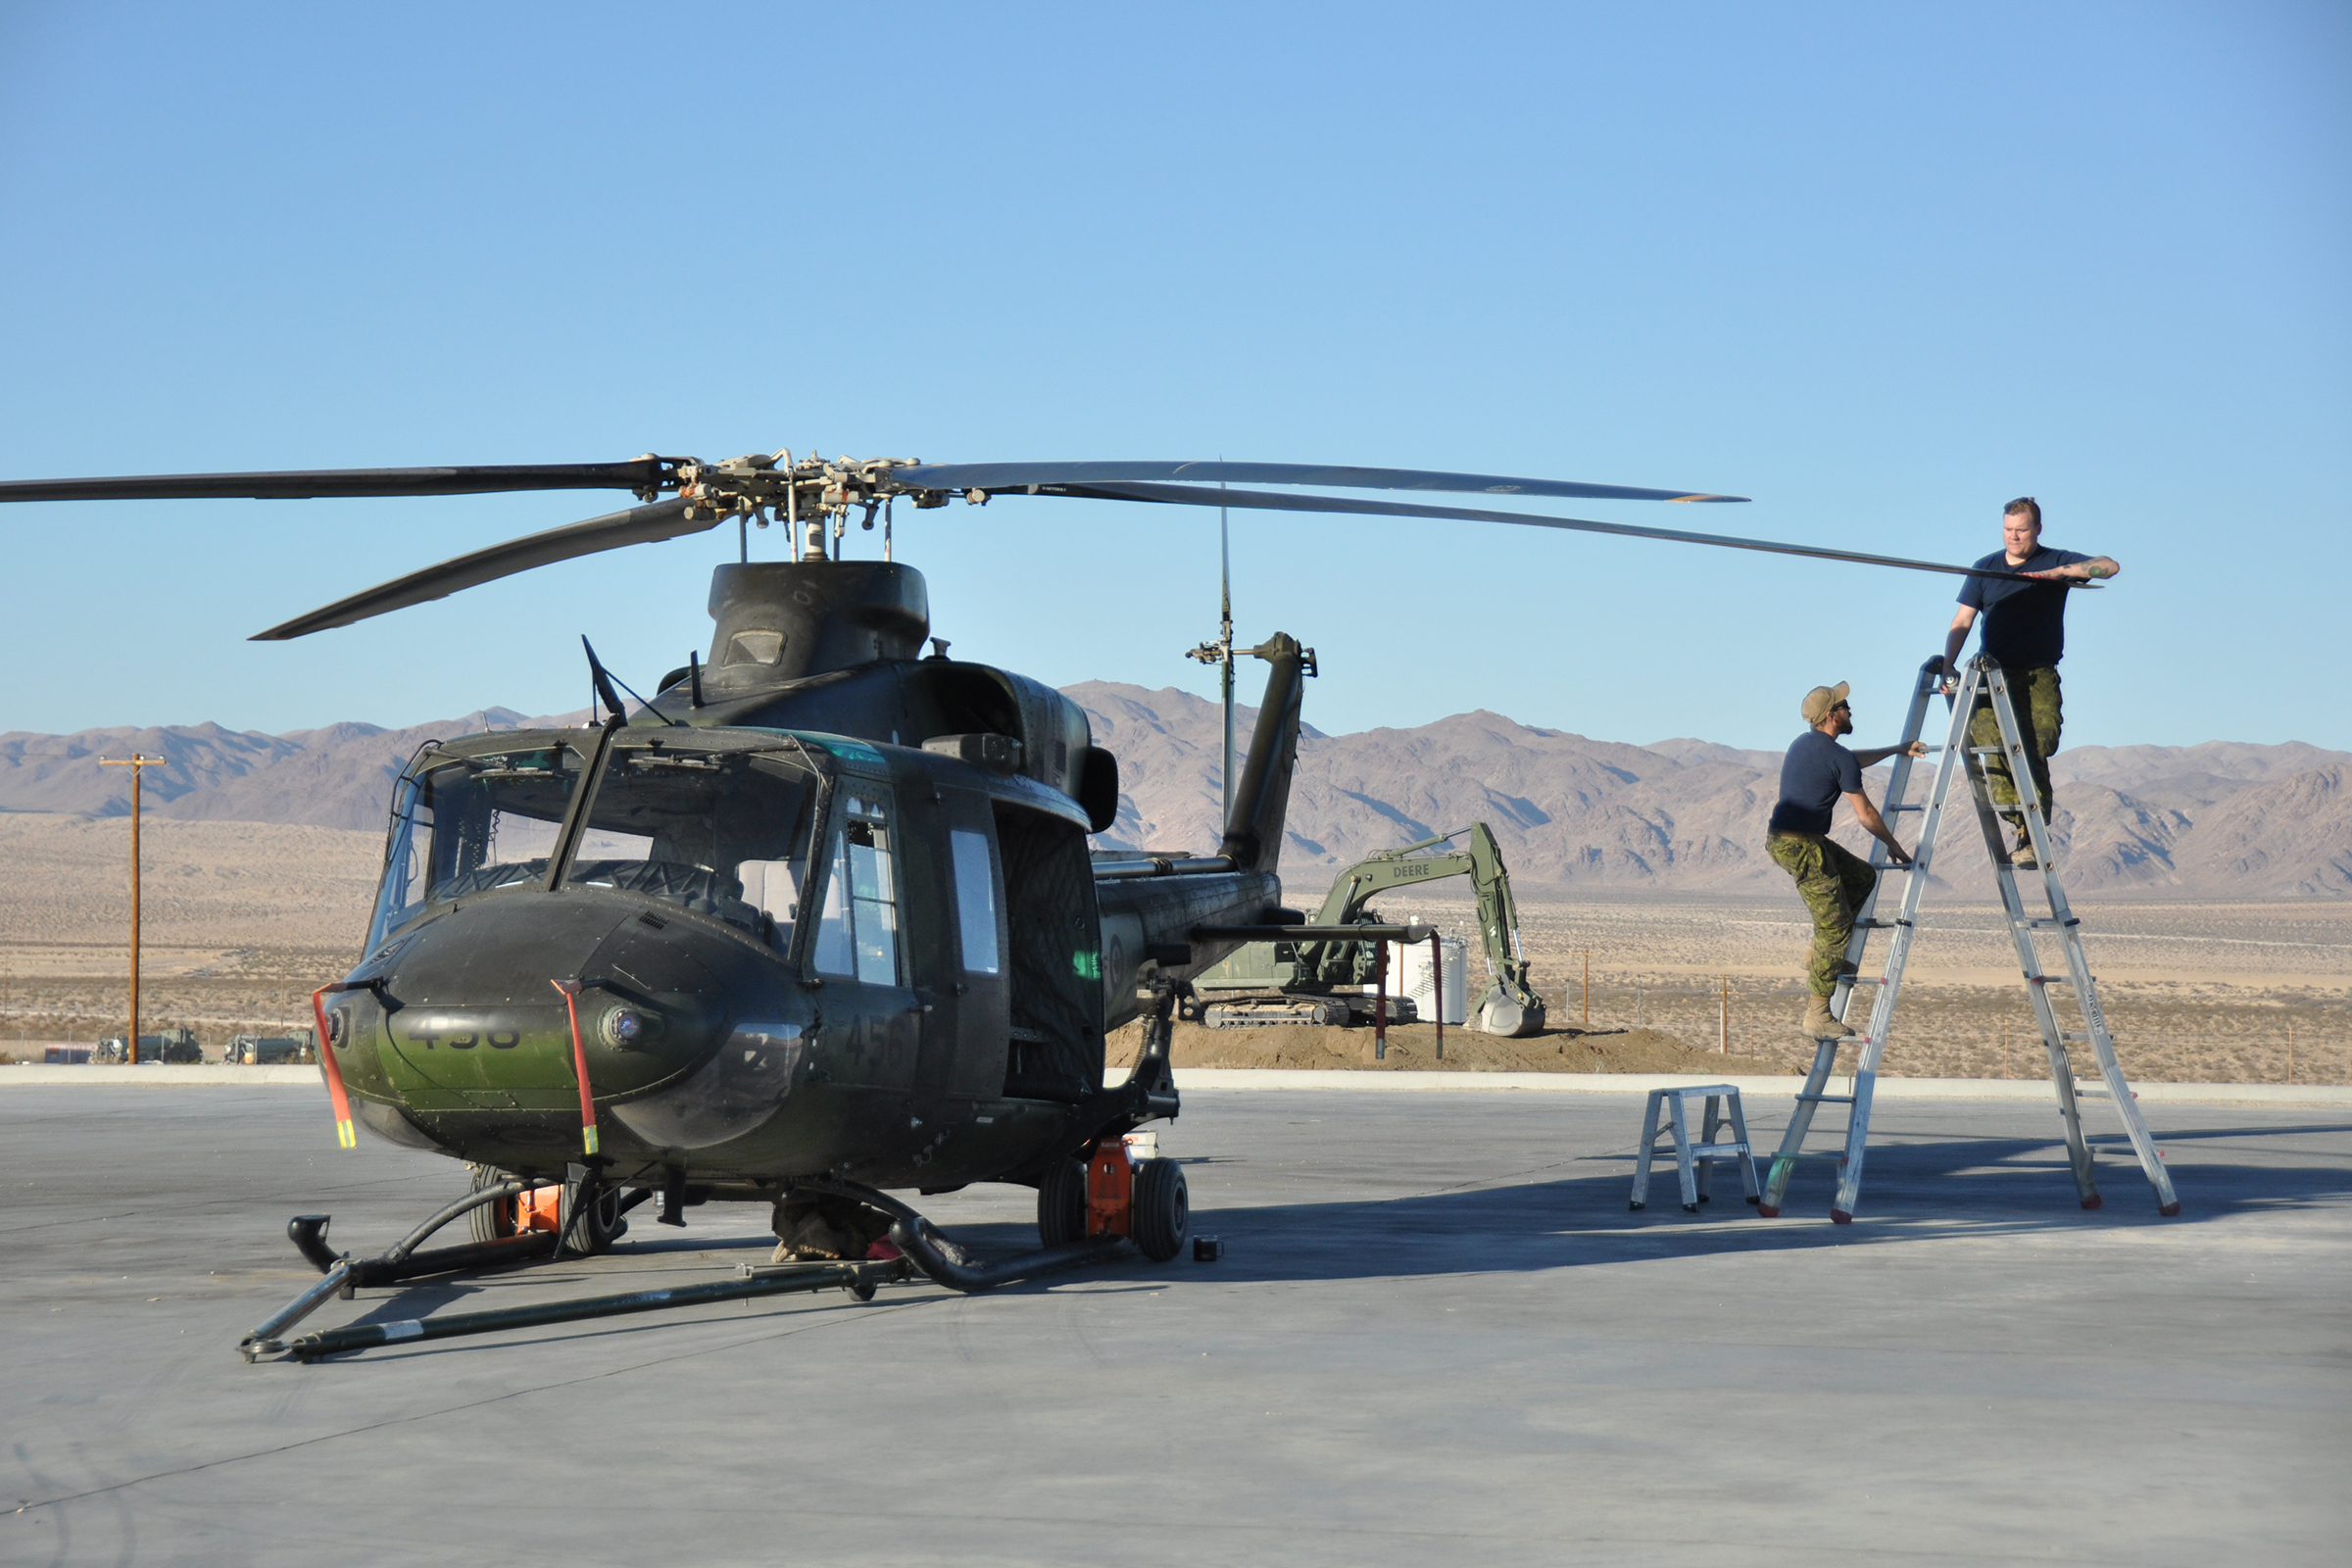 Maintainers from 408 Tactical Helicopter Squadron carry out maintenance on one of the squadron's CH-146 Griffons during Exercise Striking Bat at Marine Corps Air Ground Combat Center Twentynine Palms, California. The center is in the Mojave Desert. PHOTO: Corporal Desiree T. Bourdon, DND